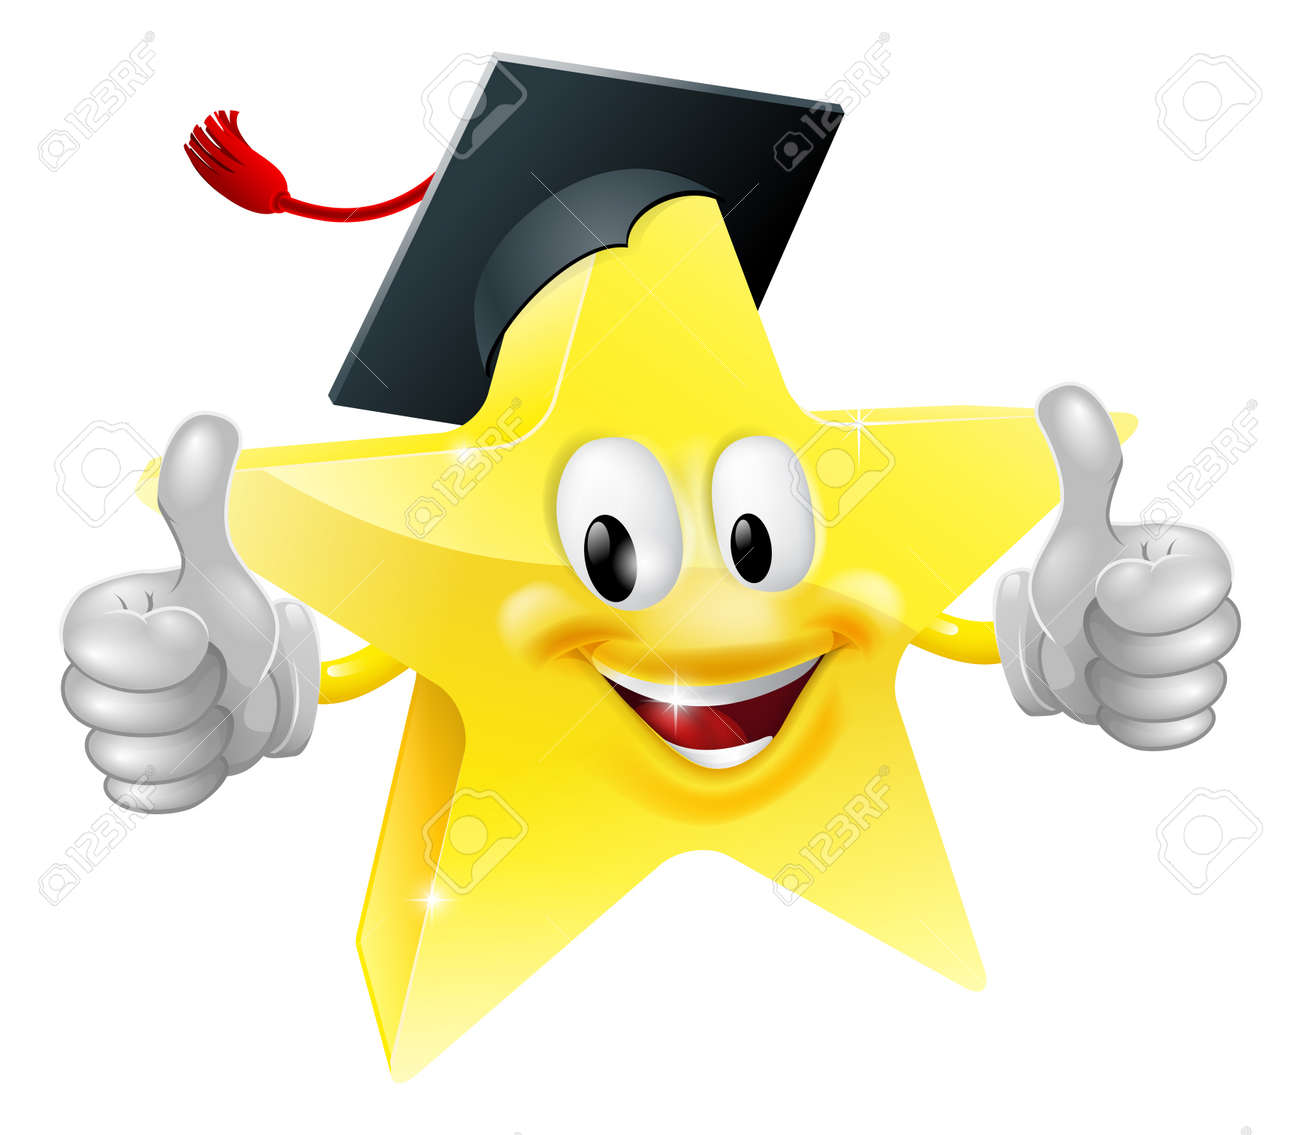 Cartoon star mascot with a graduate's mortarboard cap on giving a thumbs up Stock Vector - 15470358